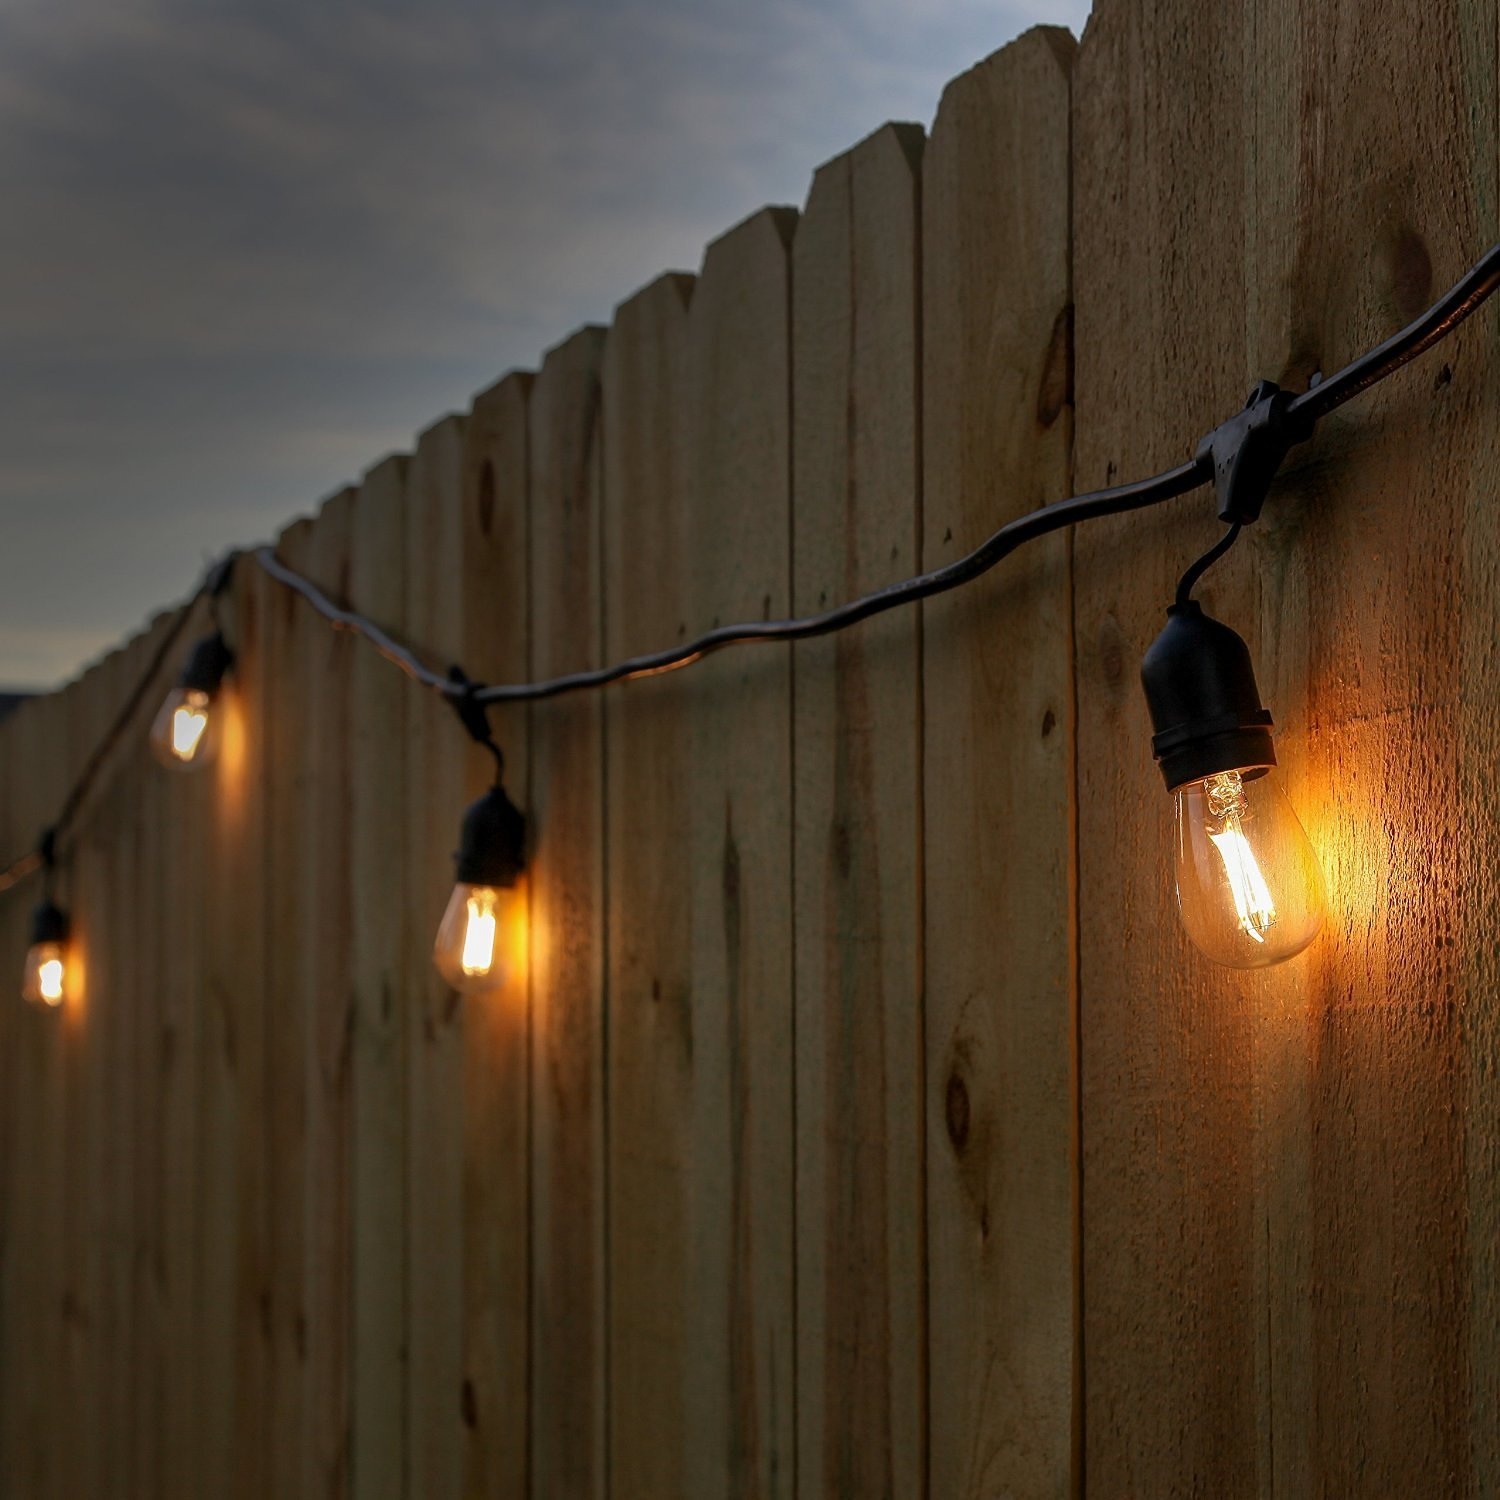 Newhouse Lighting 48-Foot Outdoor String Lights, LED Bulbs